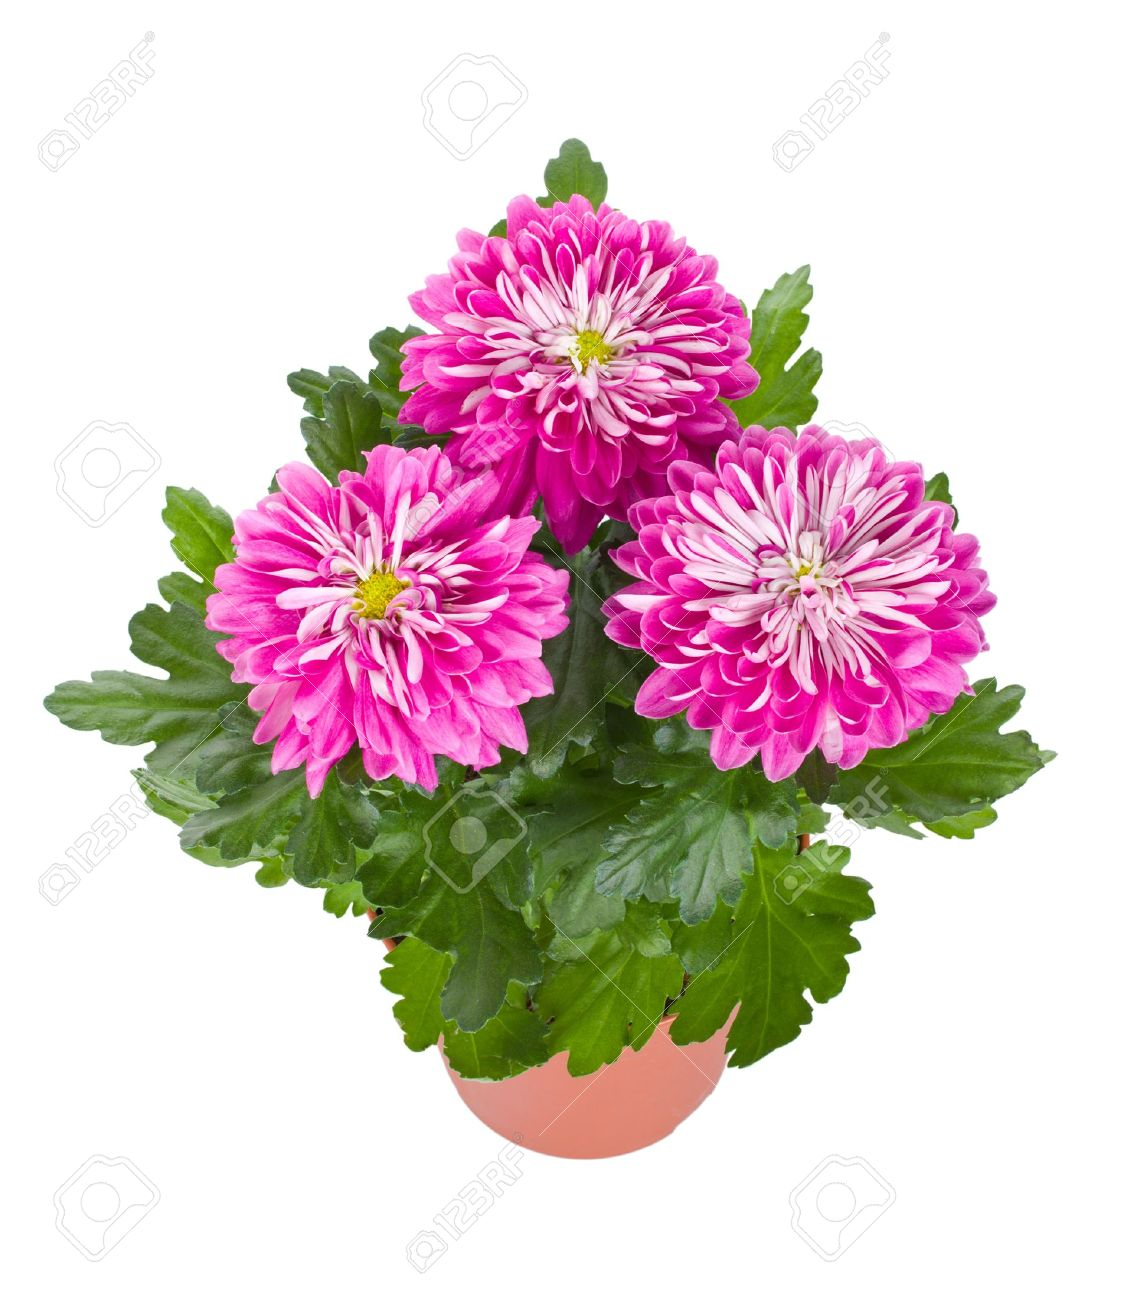 close-up pink chrysanthemum flowers in pot, isolated on white - 8895969